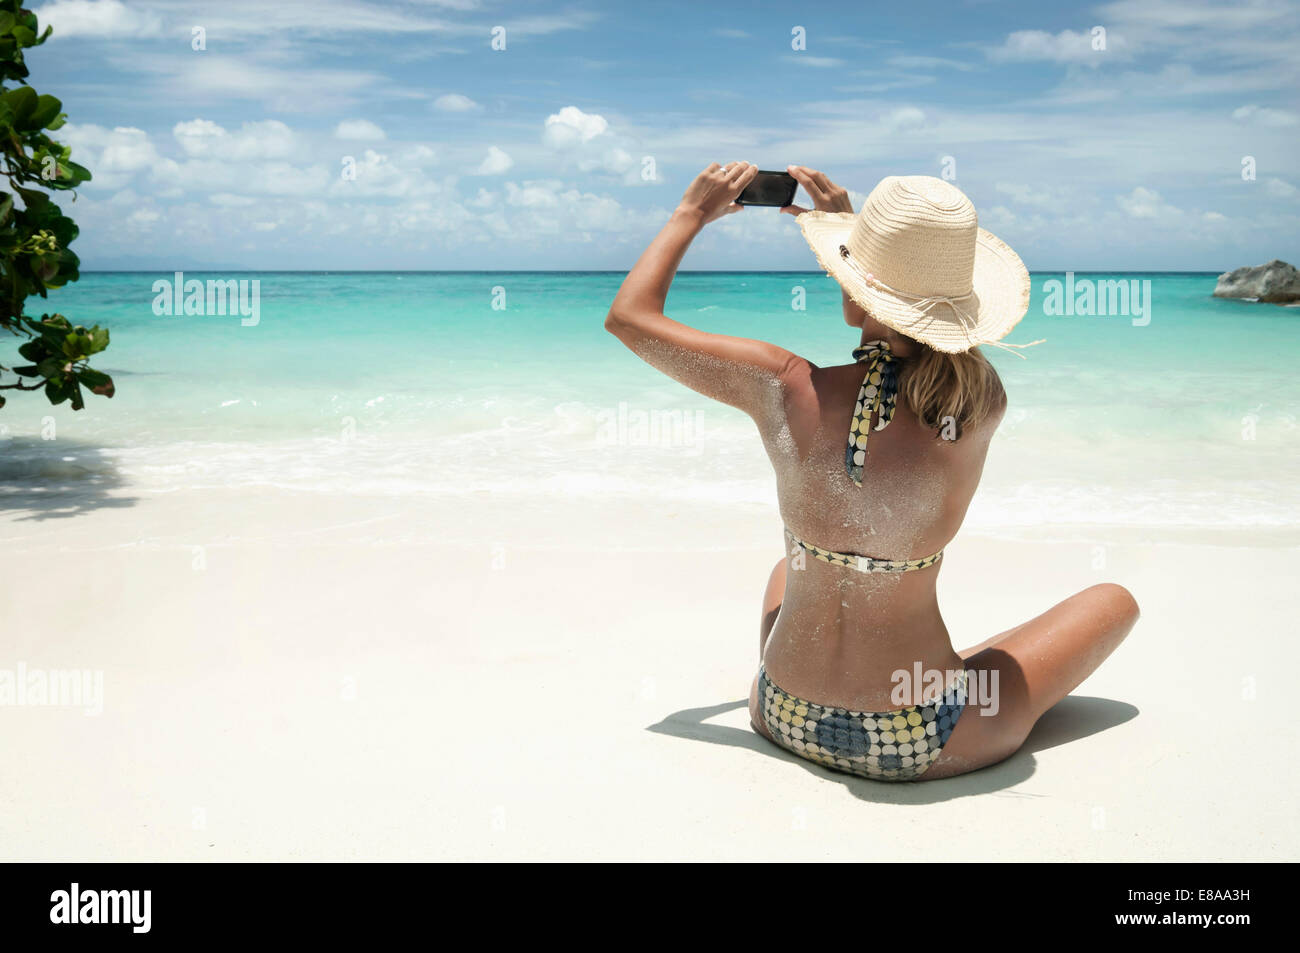 woman taking selfportrait on the beach, Koh Lipe, Thailand - Stock Image